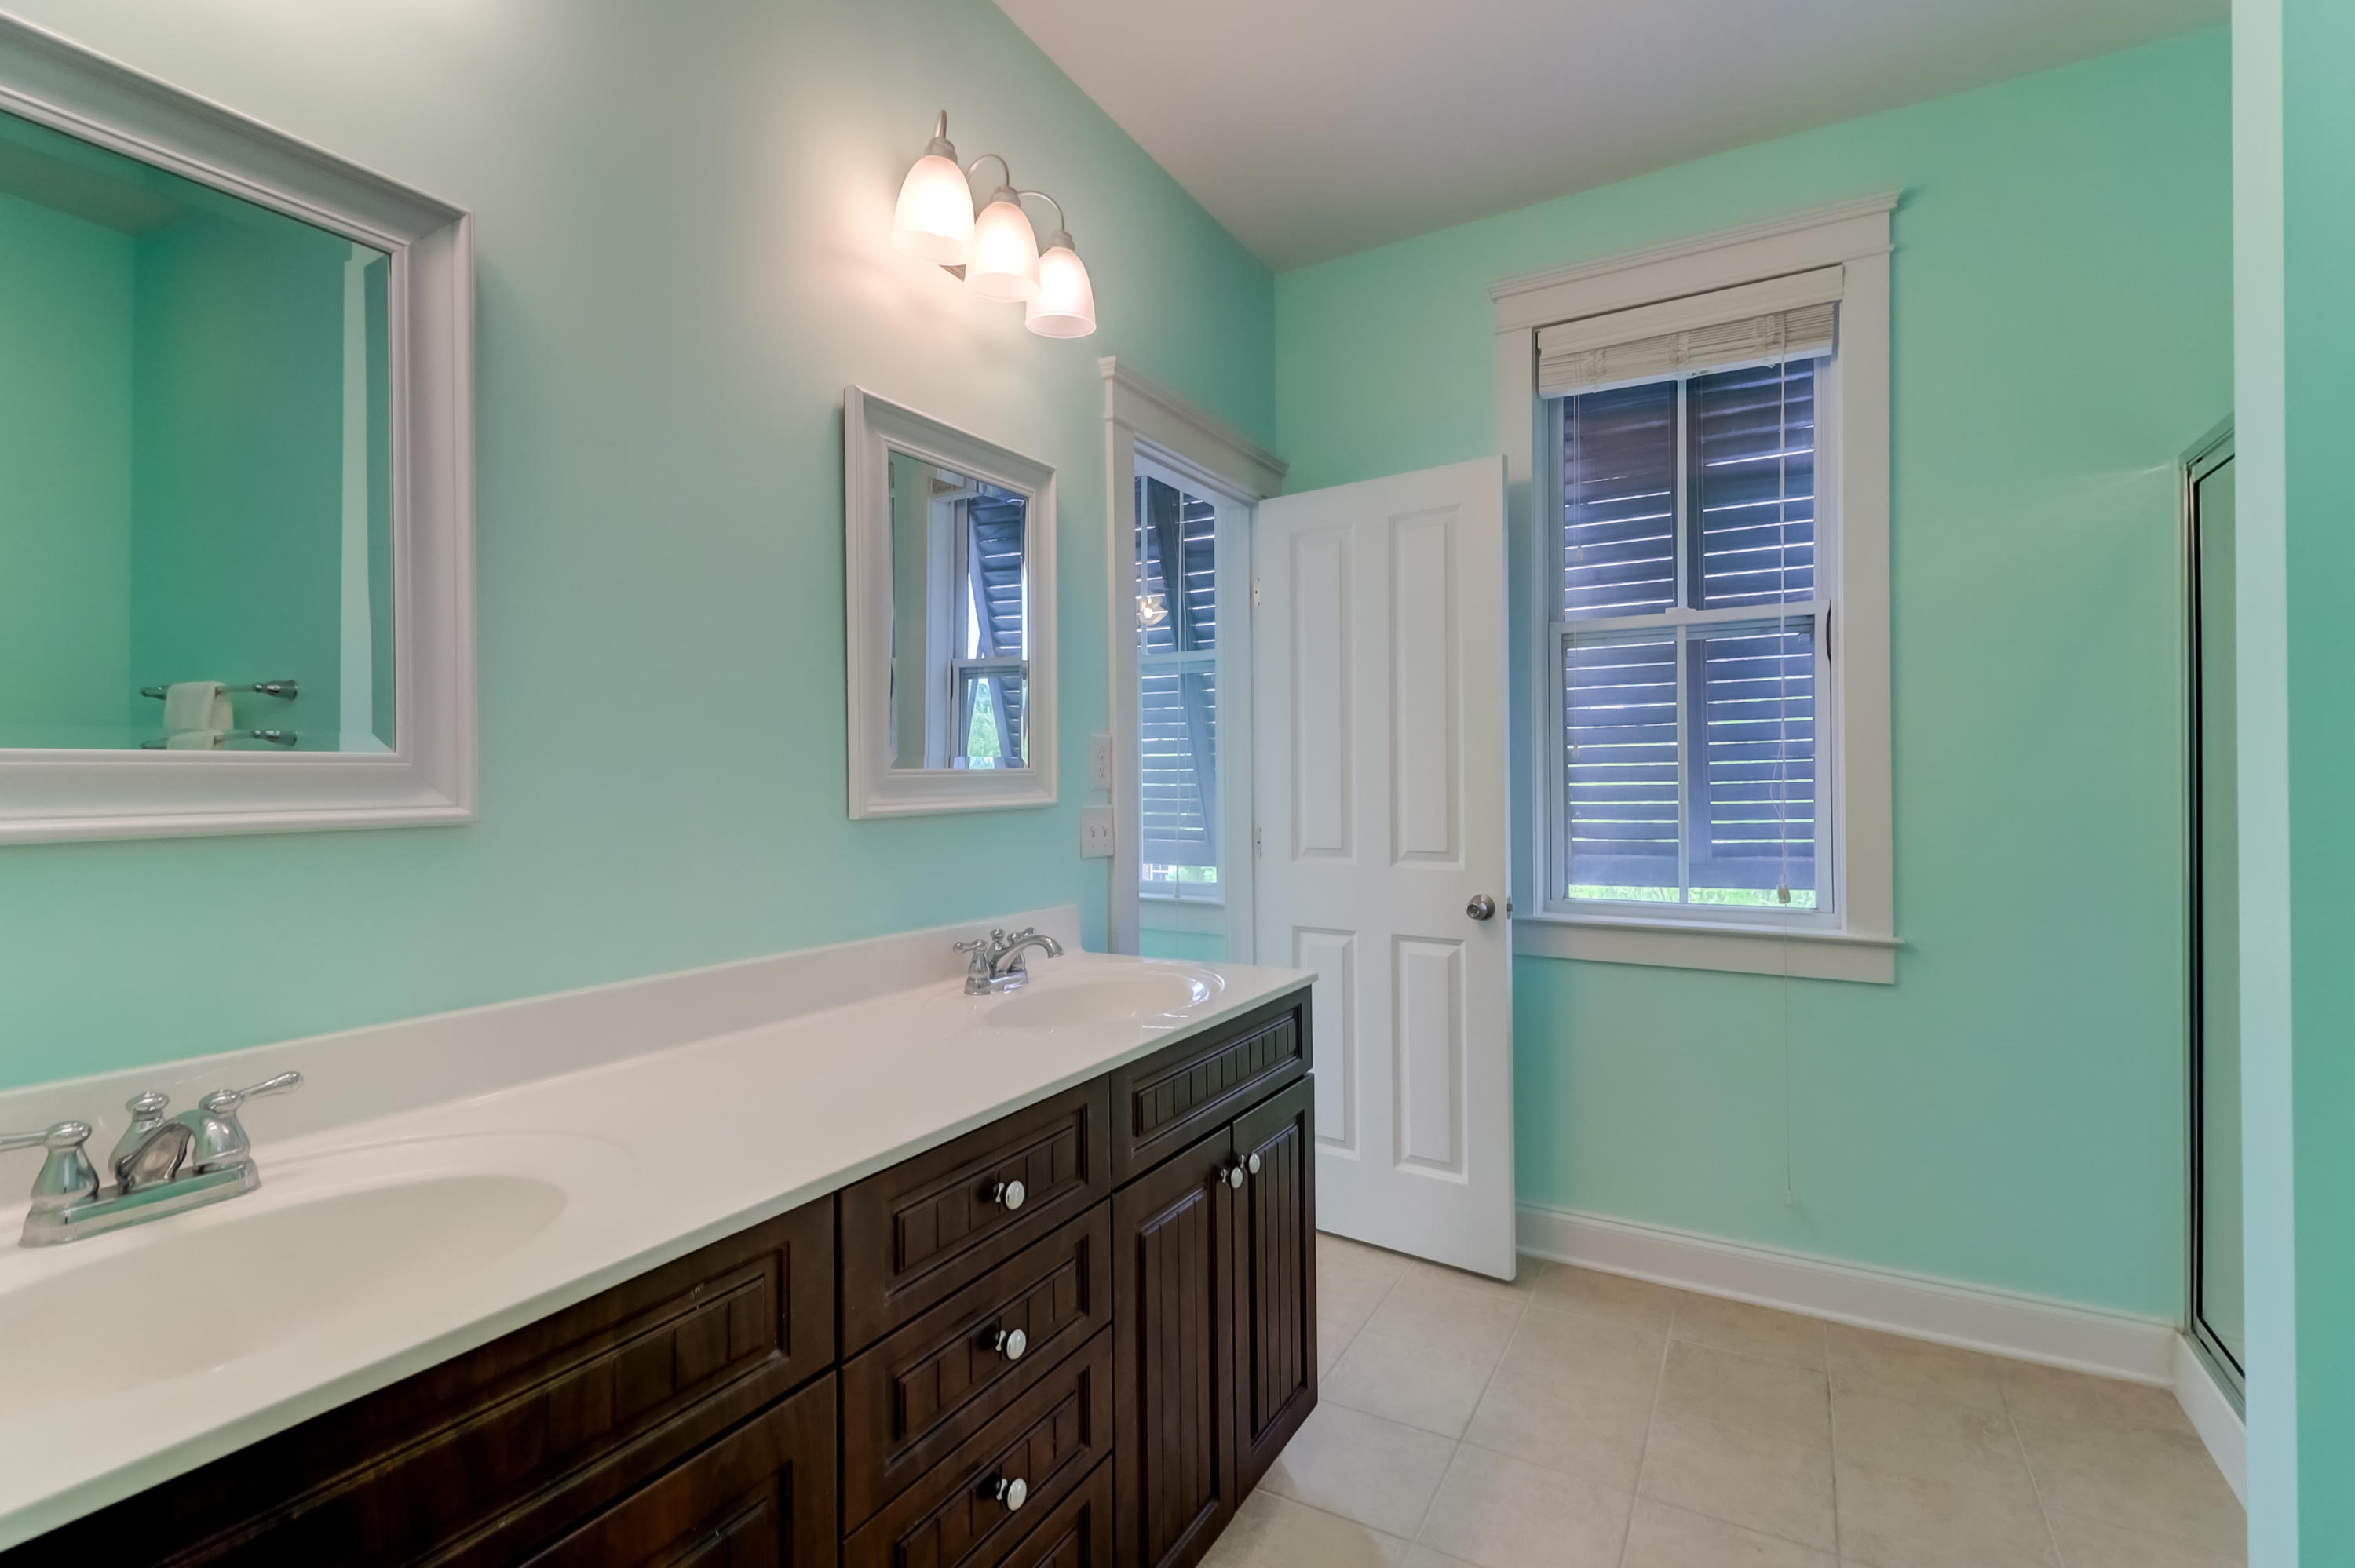 Watermark Homes For Sale - 1203 Appling, Mount Pleasant, SC - 29